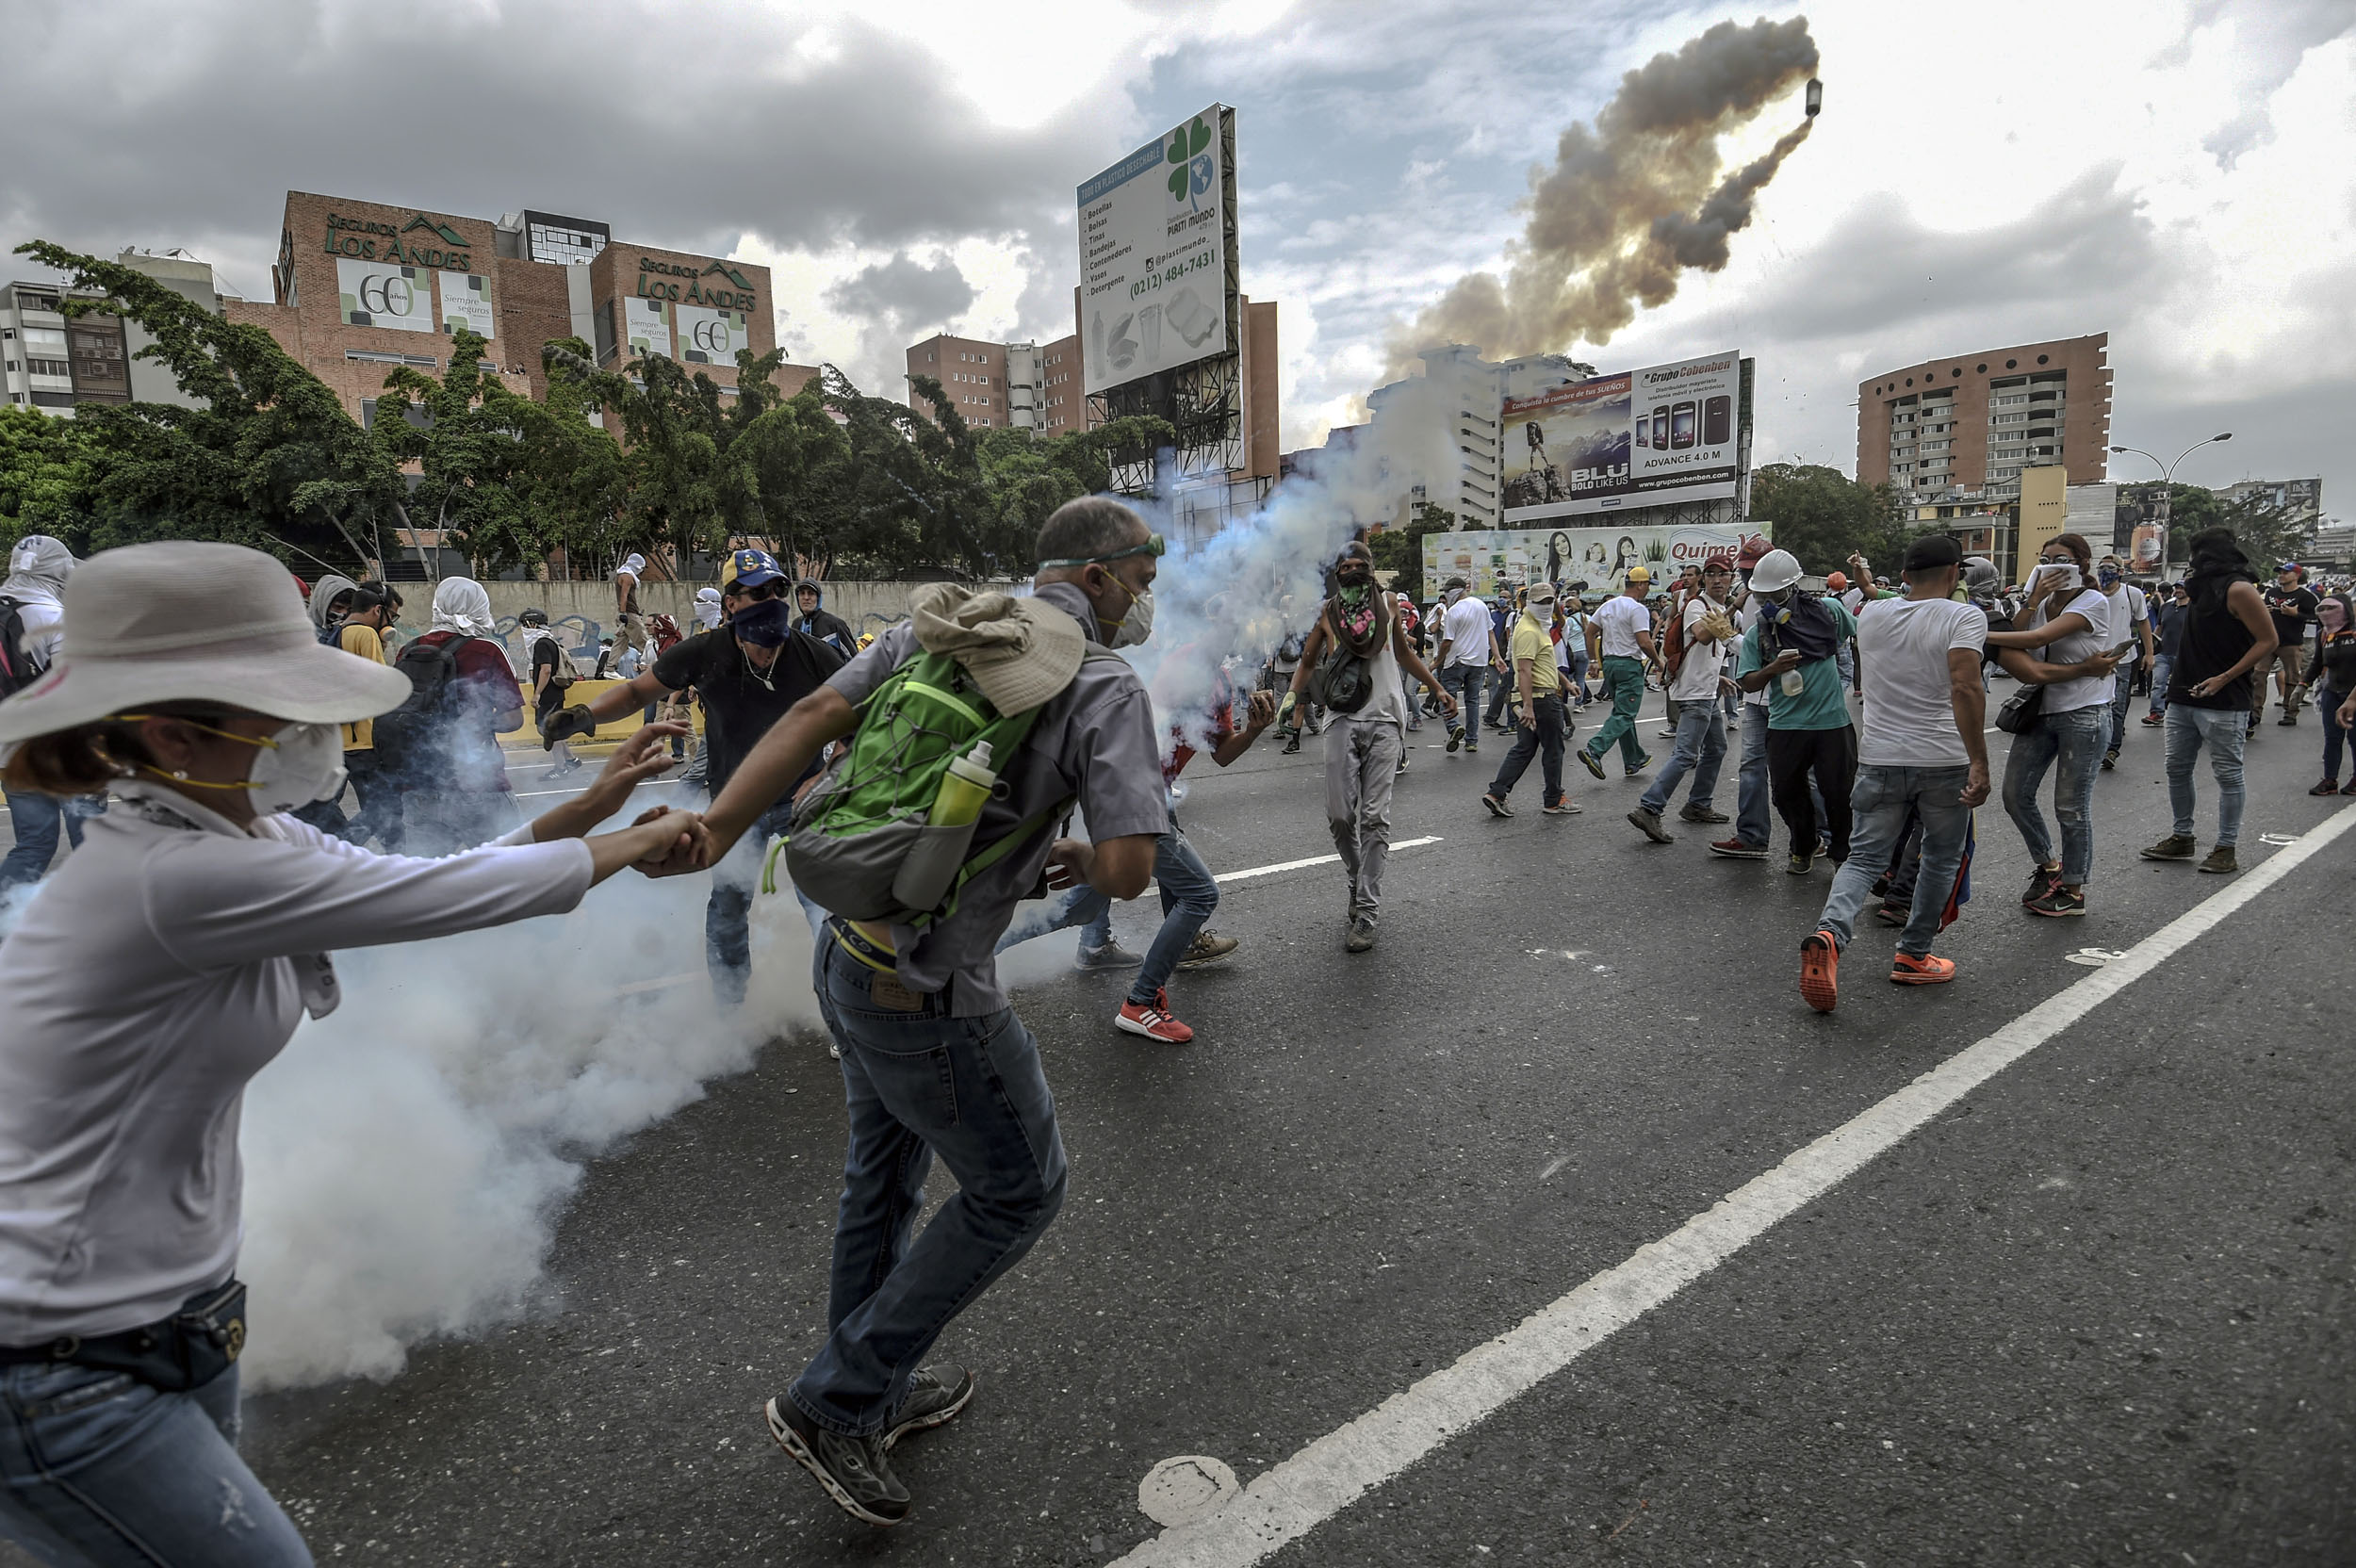 Demonstrators clash with riot police during a protest against Venezuelan President Nicolas Maduro, in Caracas on April 20, 2017. Venezuelan riot police fired tear gas Thursday at groups of protesters seeking to oust President Nicolas Maduro, who have vowed new mass marches after a day of deadly unrest. Police in western Caracas broke up scores of opposition protesters trying to join a larger march, though there was no immediate repeat of Wednesday's violent clashes, which left three people dead. / AFP PHOTO / JUAN BARRETO